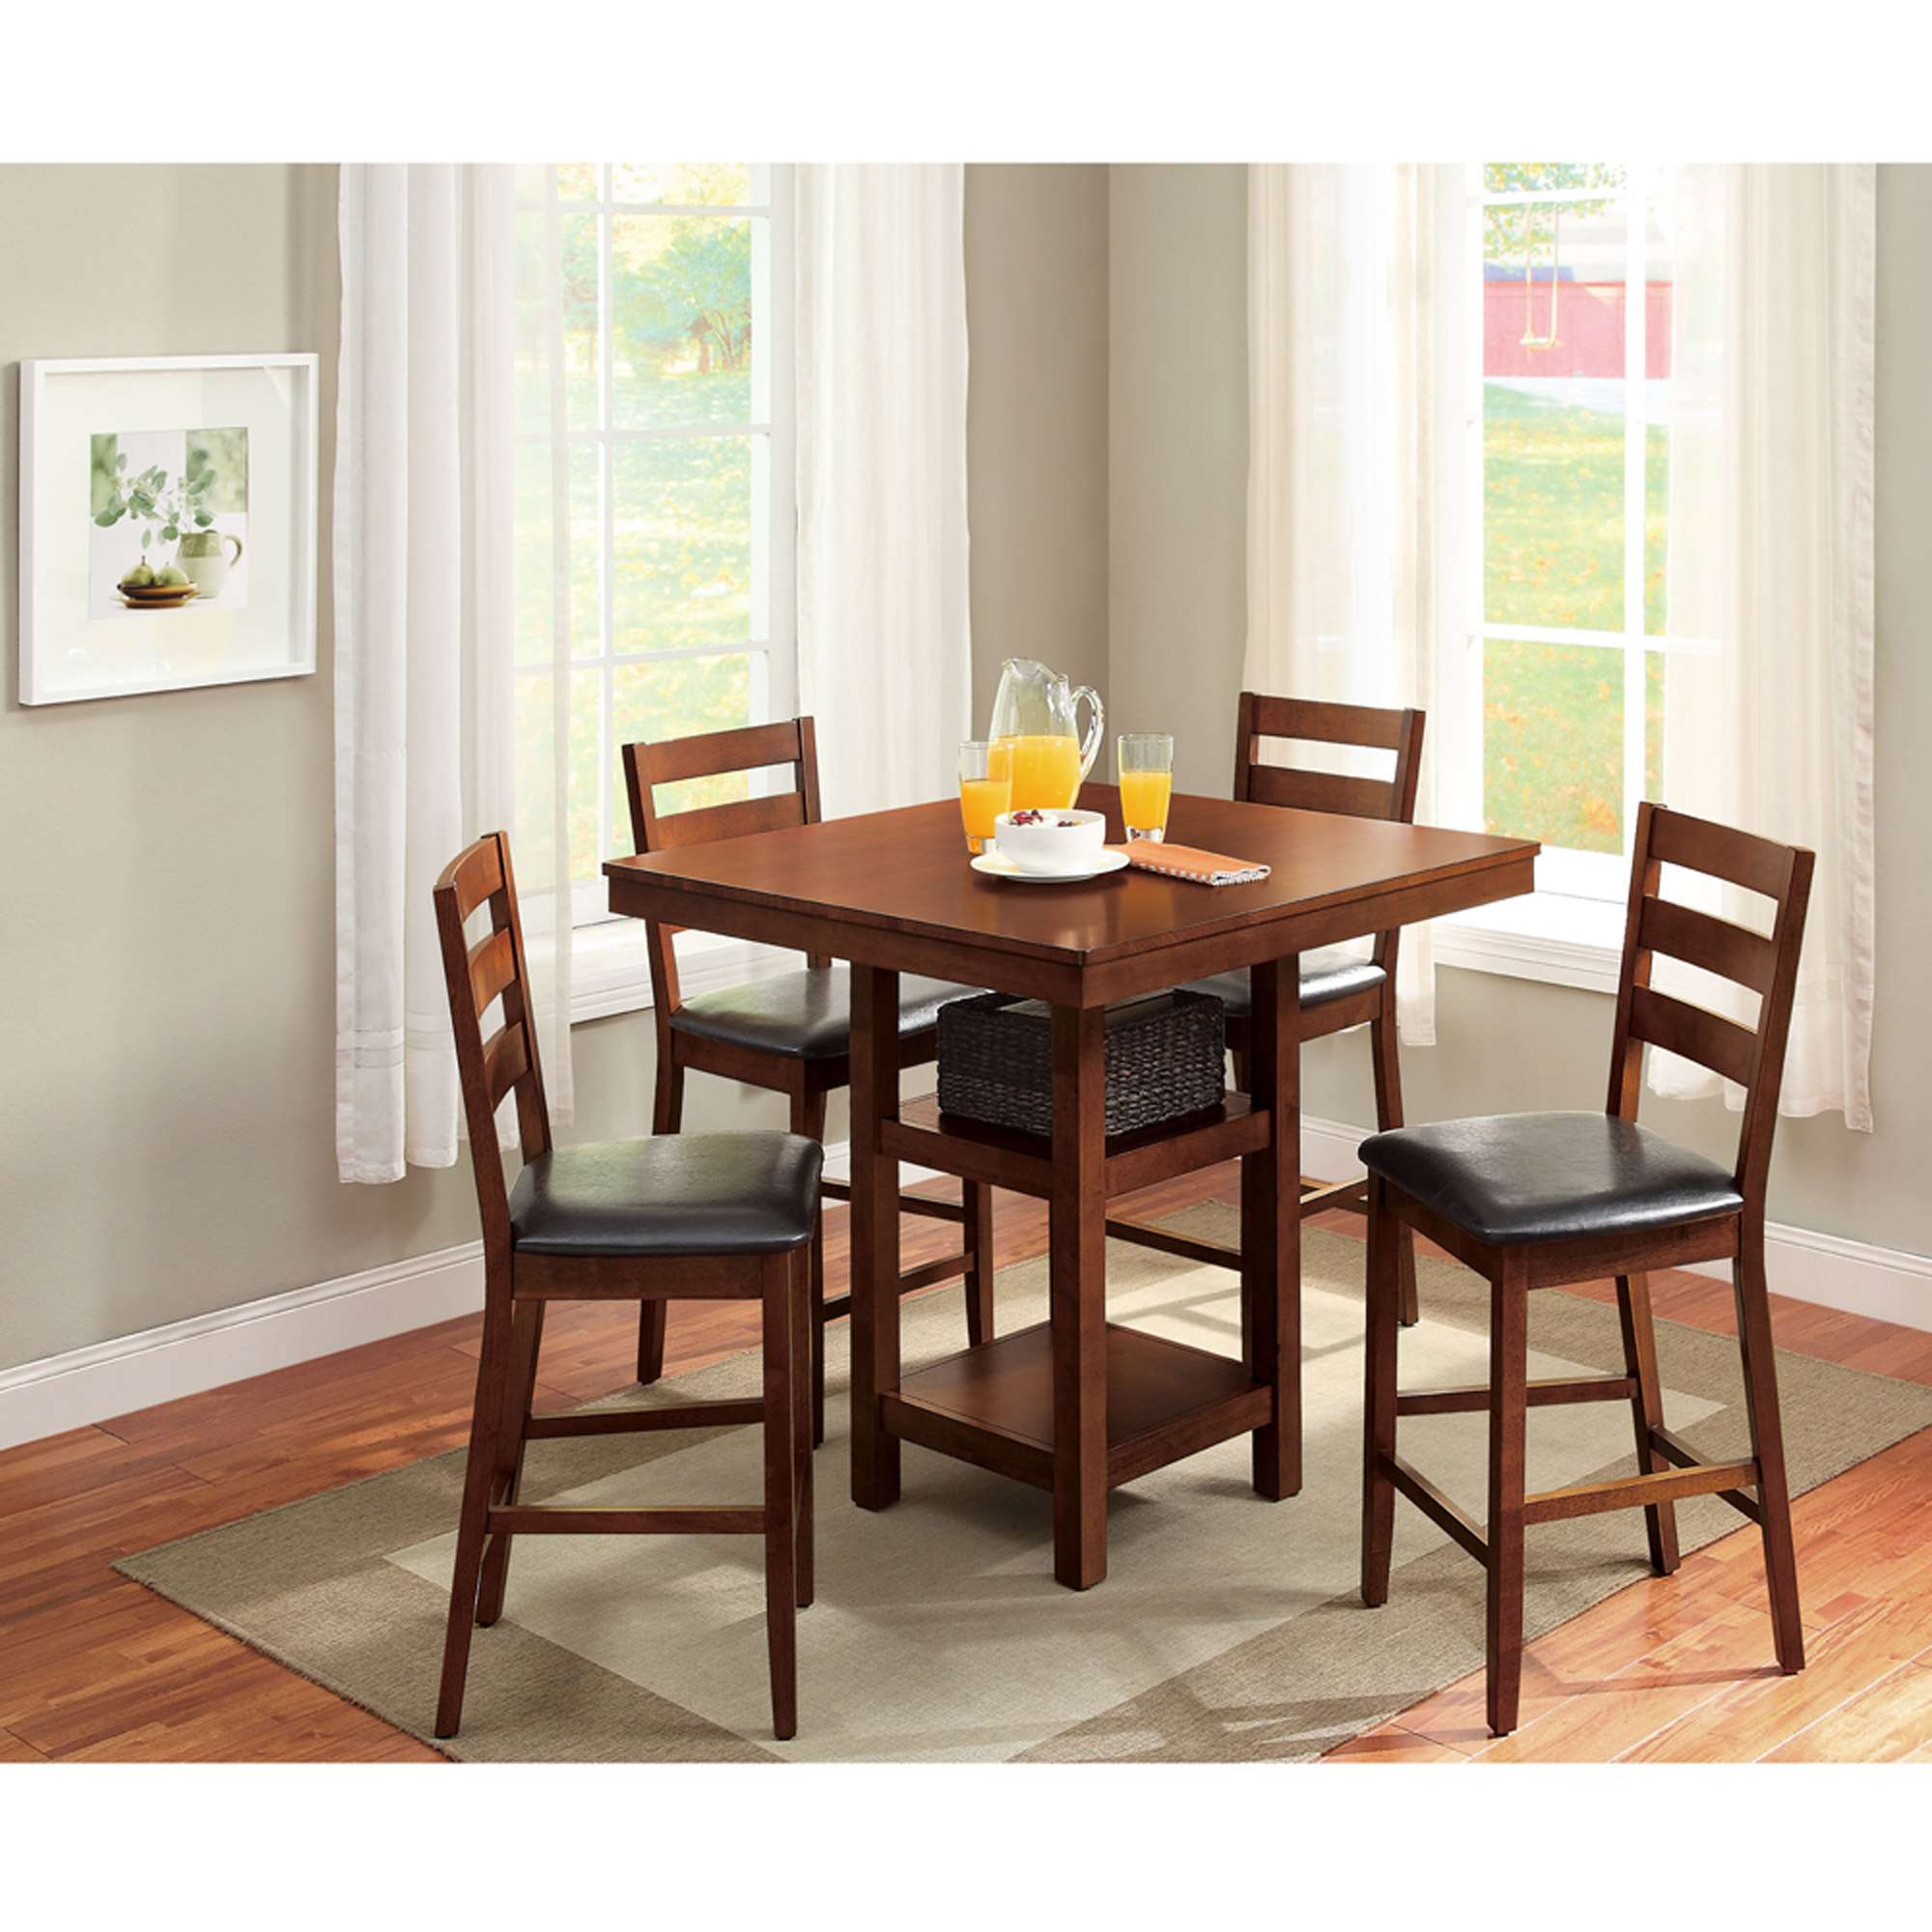 Dining Room Table Pictures Amazing Kitchen & Dining Furniture  Walmart Design Inspiration